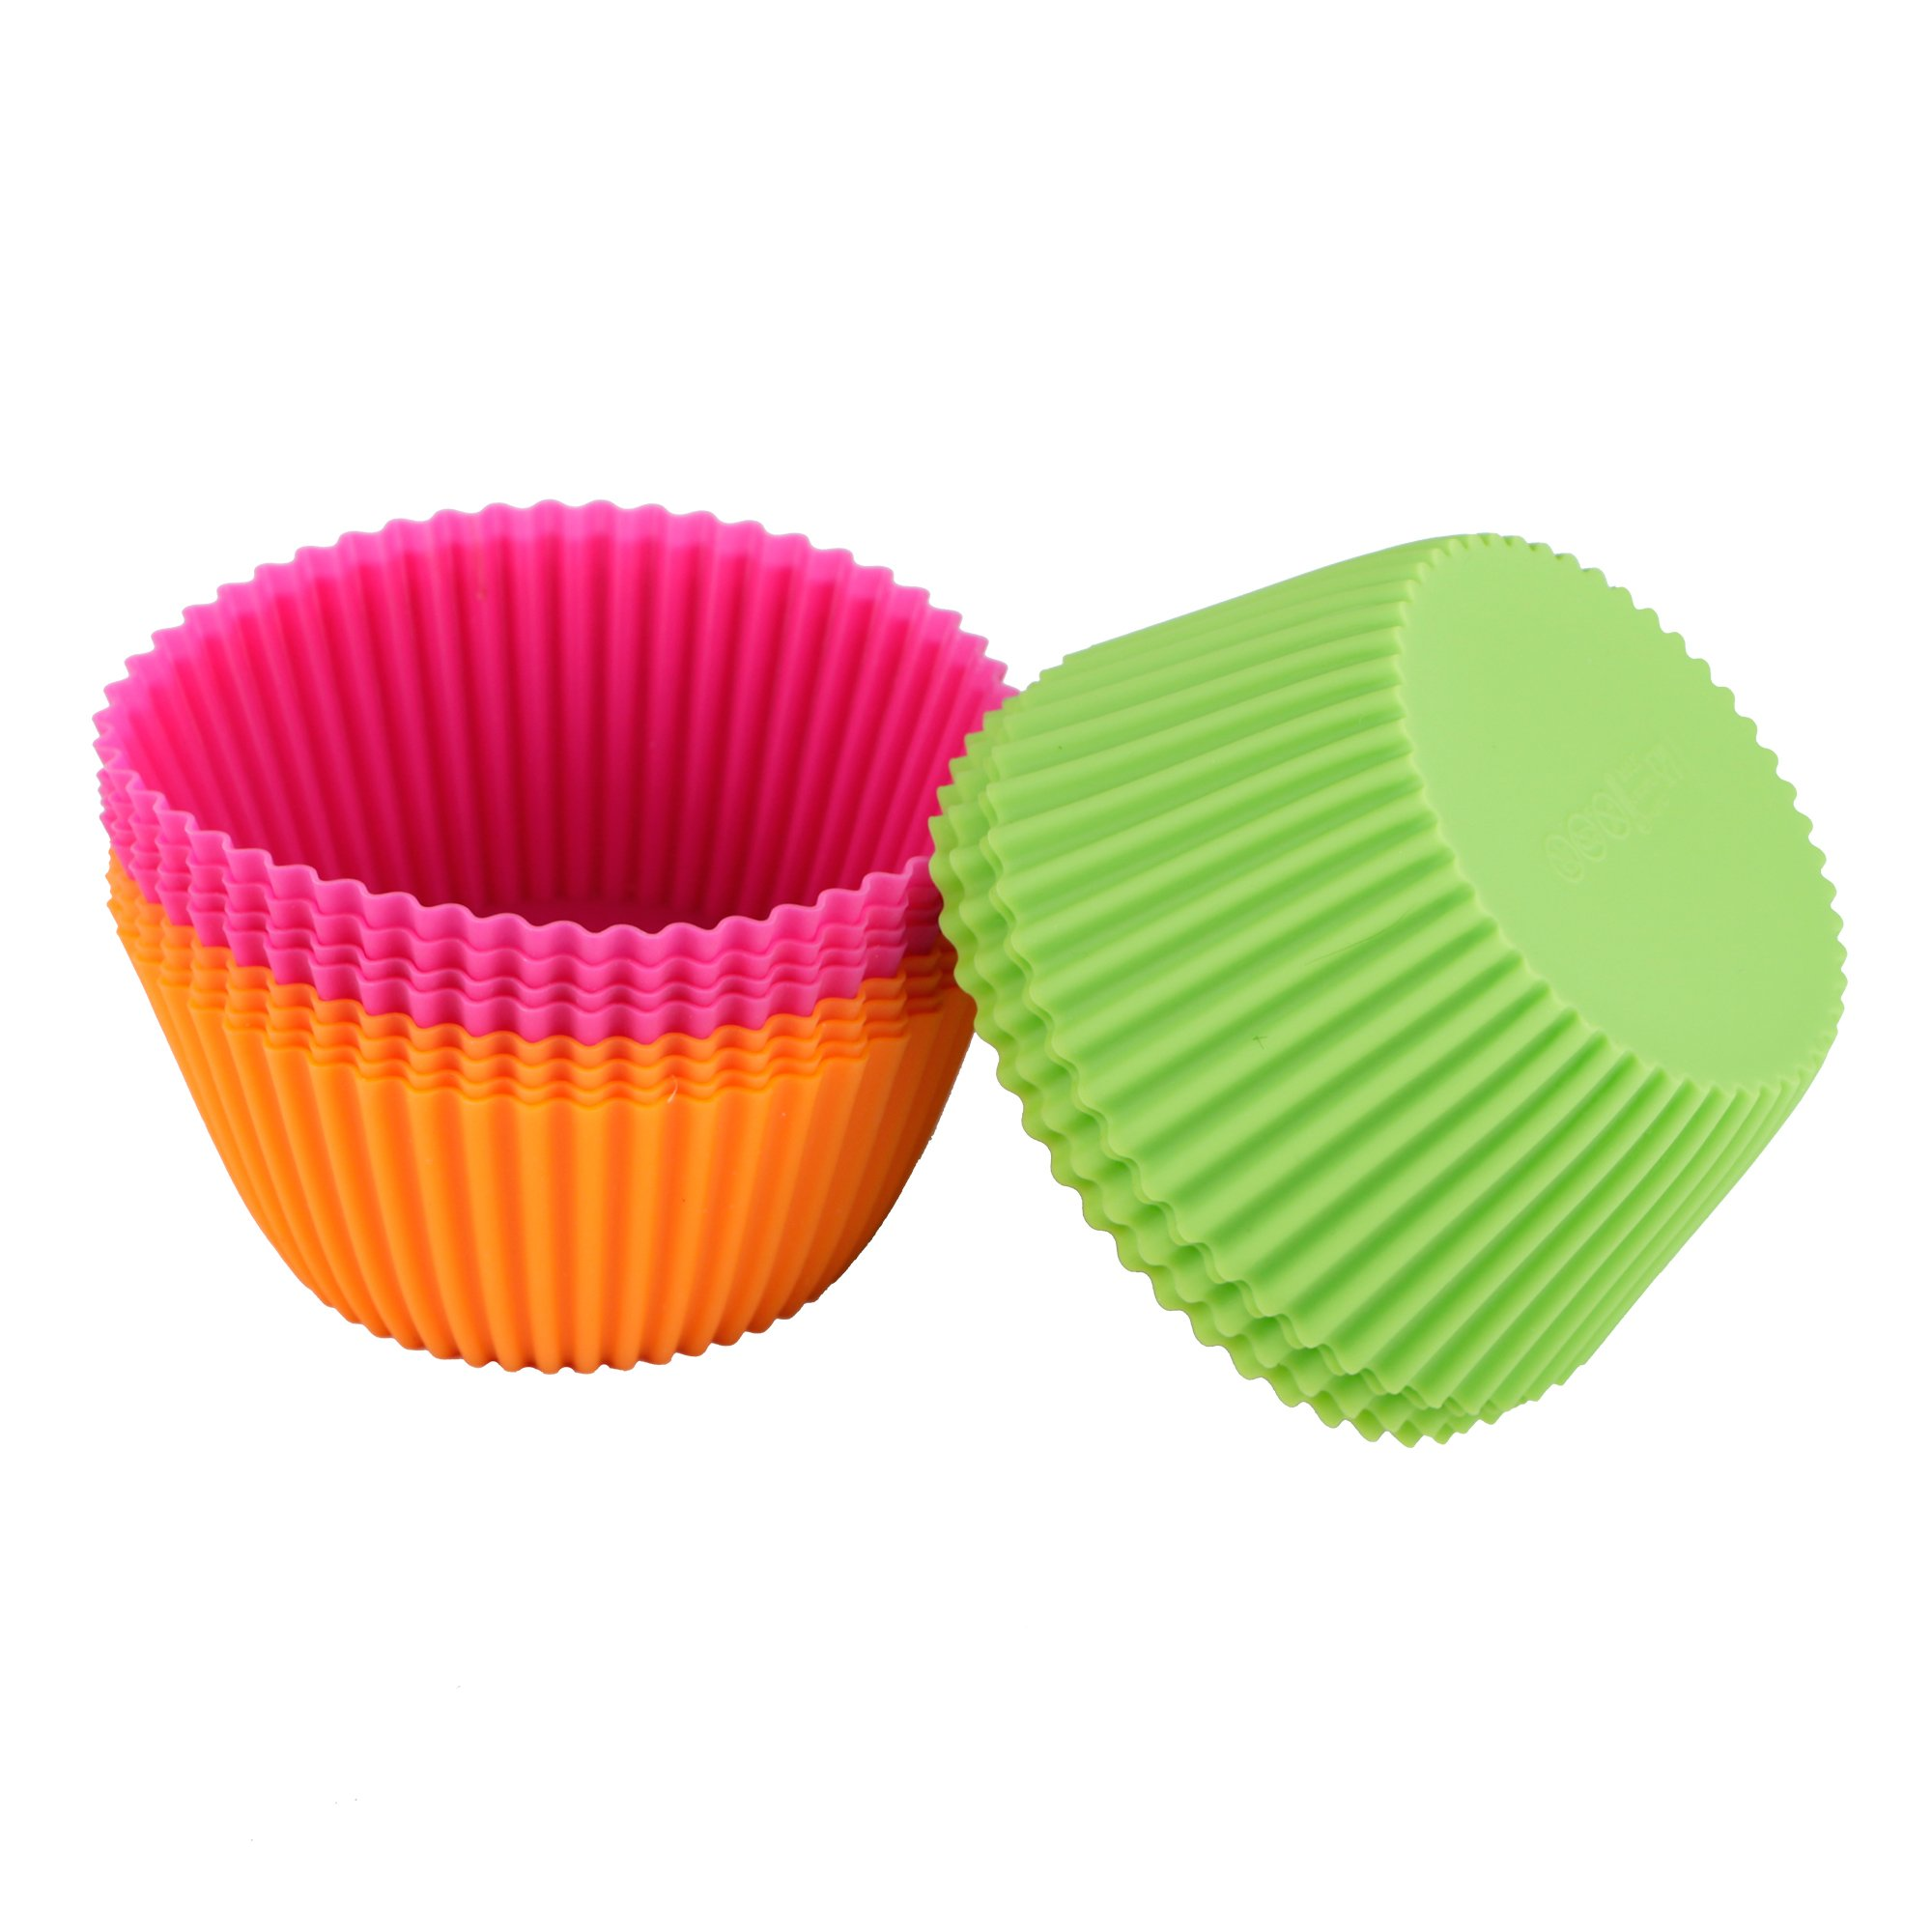 Webake 12-Pack 4.3-inch Non-stick Jumbo Silicone Cupcake Liners, Baking Cups, Muffin Liners (Round)